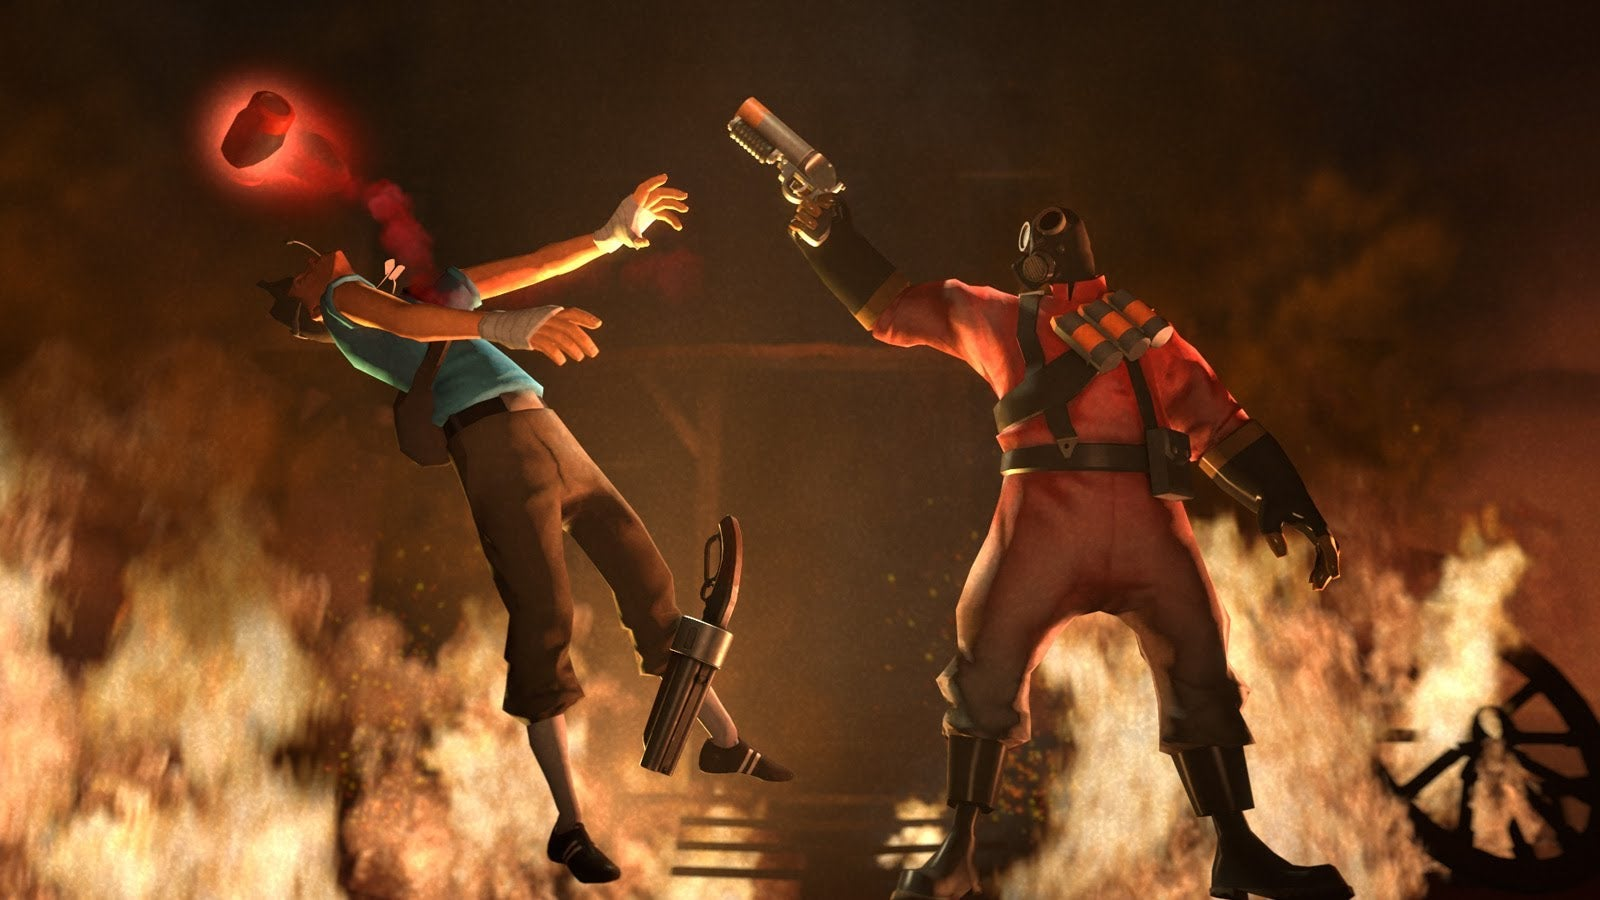 Valve To Crack Down On Team Fortress 2 Item Gambling